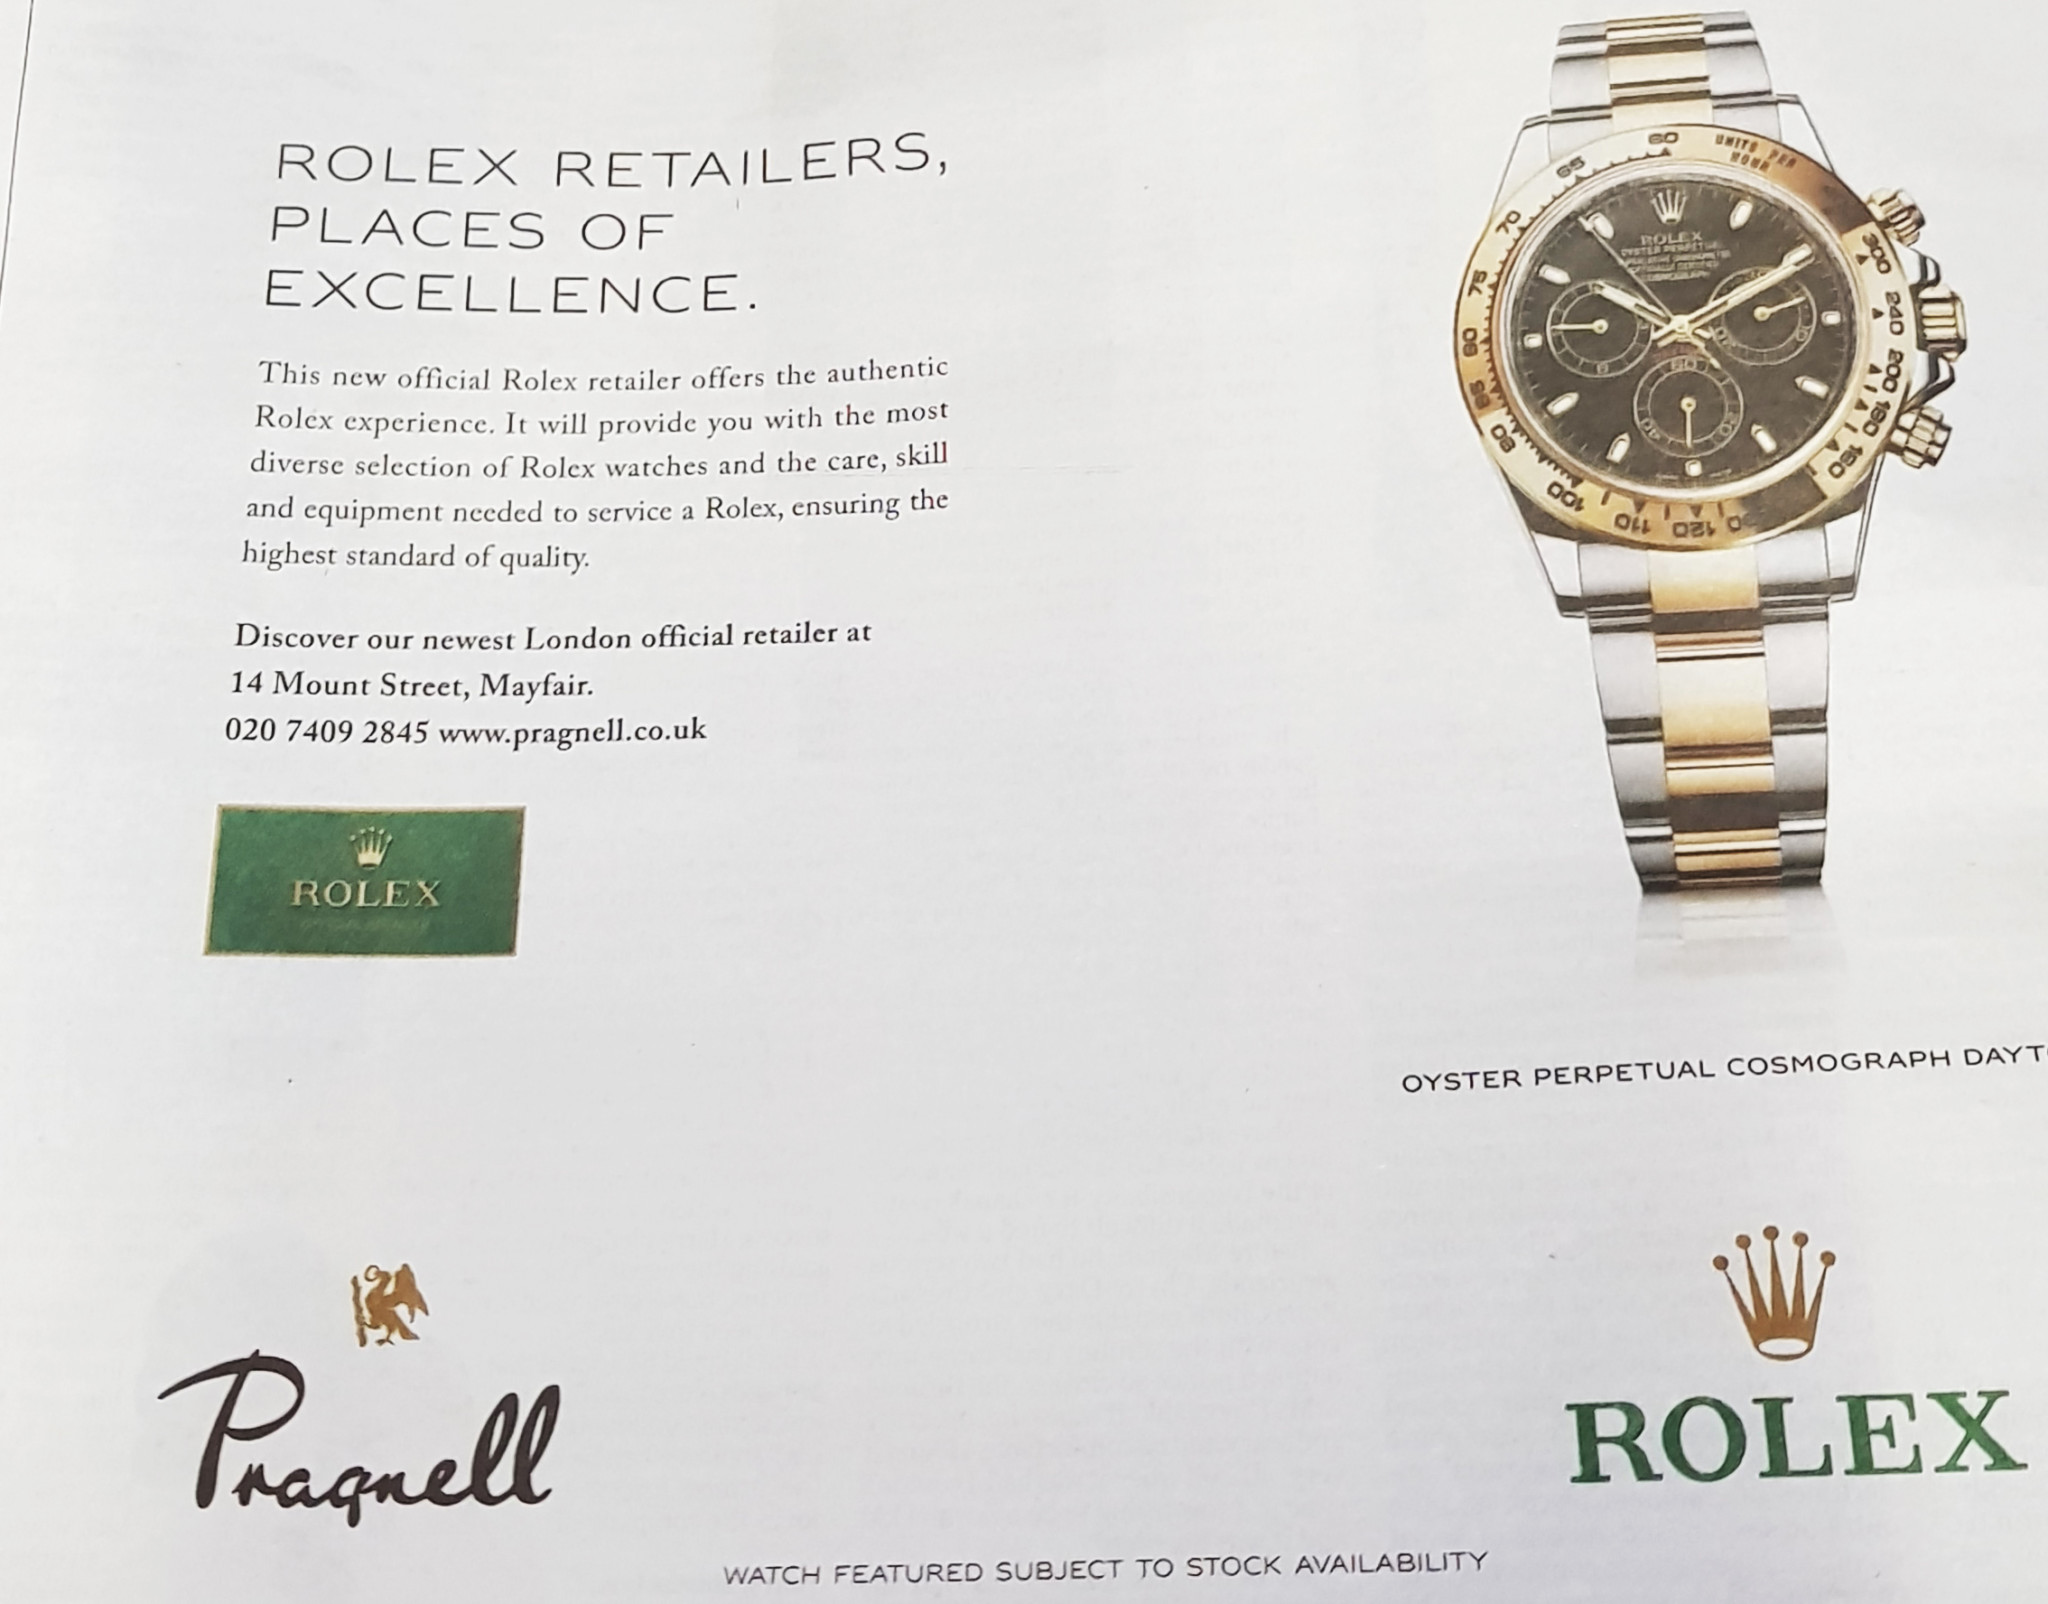 An advert in The Times promotes the opening of Pragnell in Mayfair.